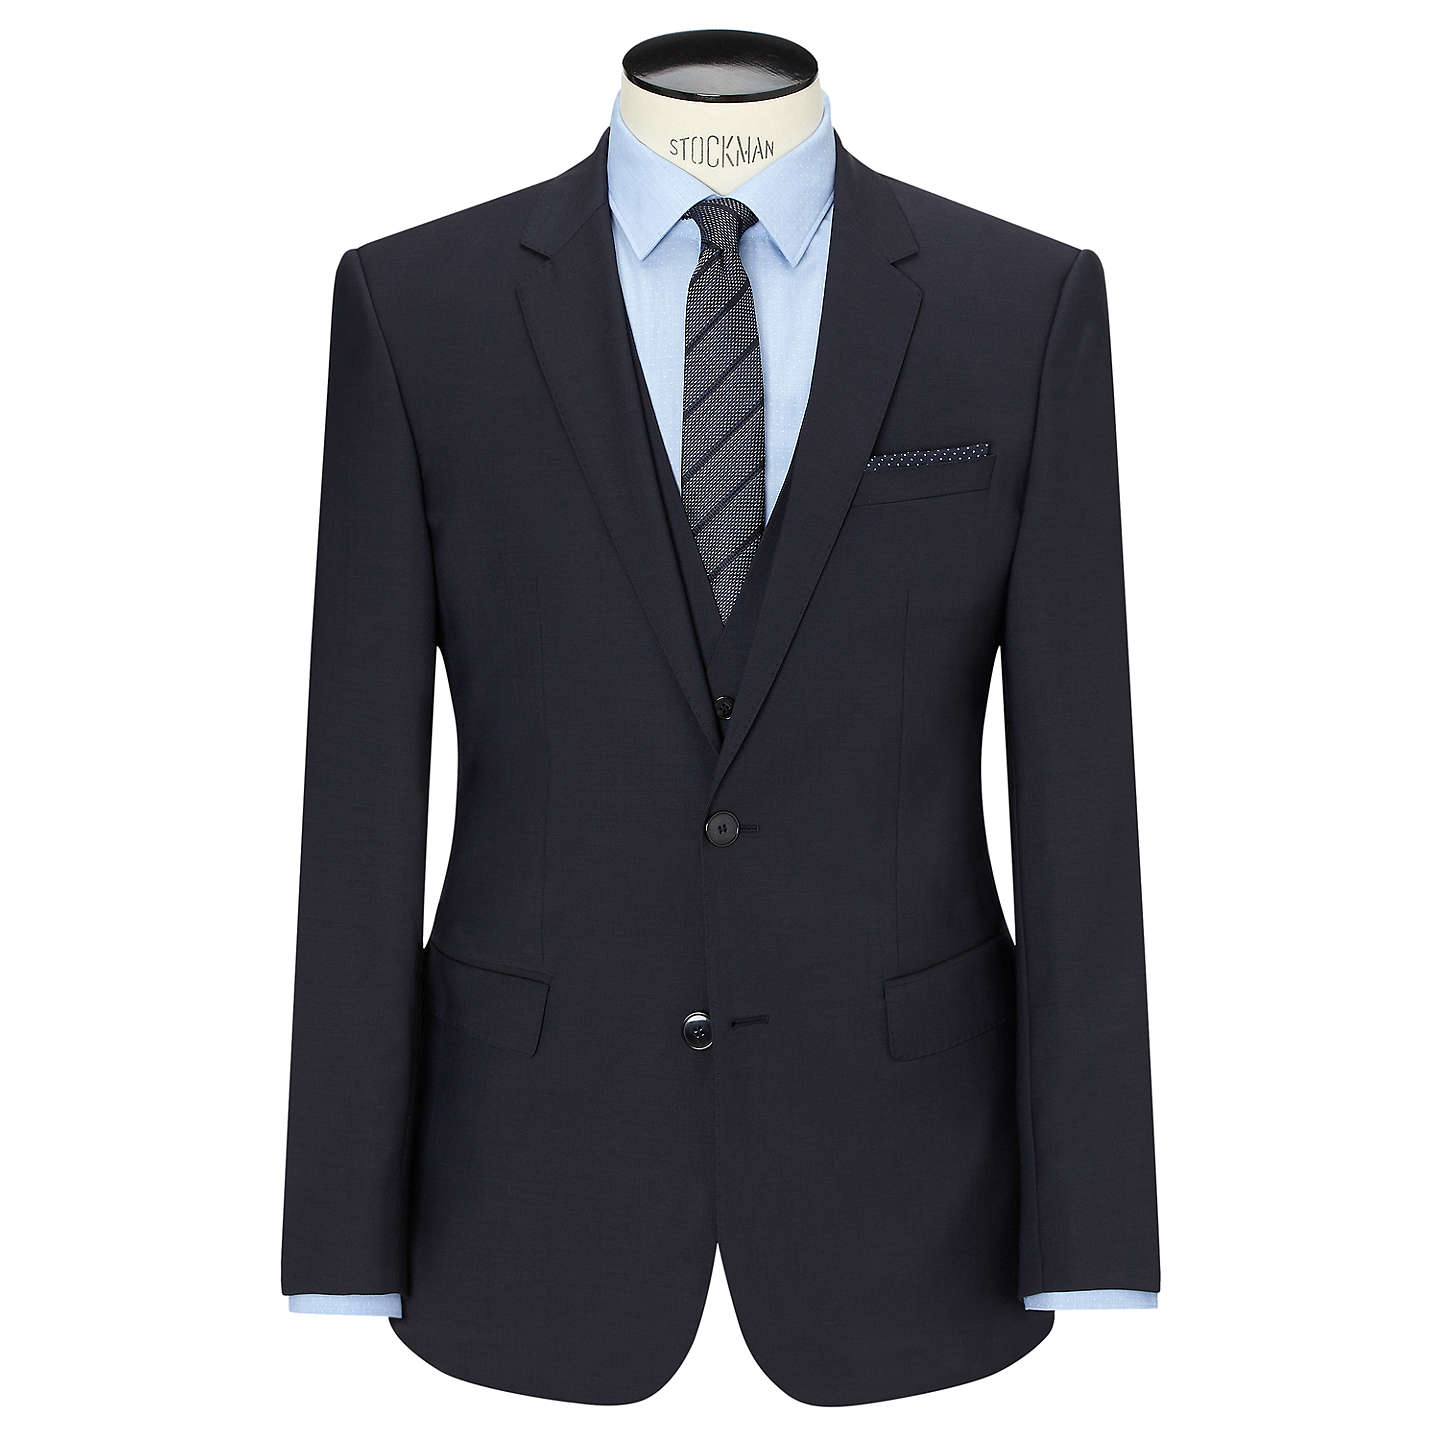 BuyHUGO by Hugo Boss Huge/Genius Virgin Wool Slim Fit Suit Jacket, Dark Blue, 38R Online at johnlewis.com